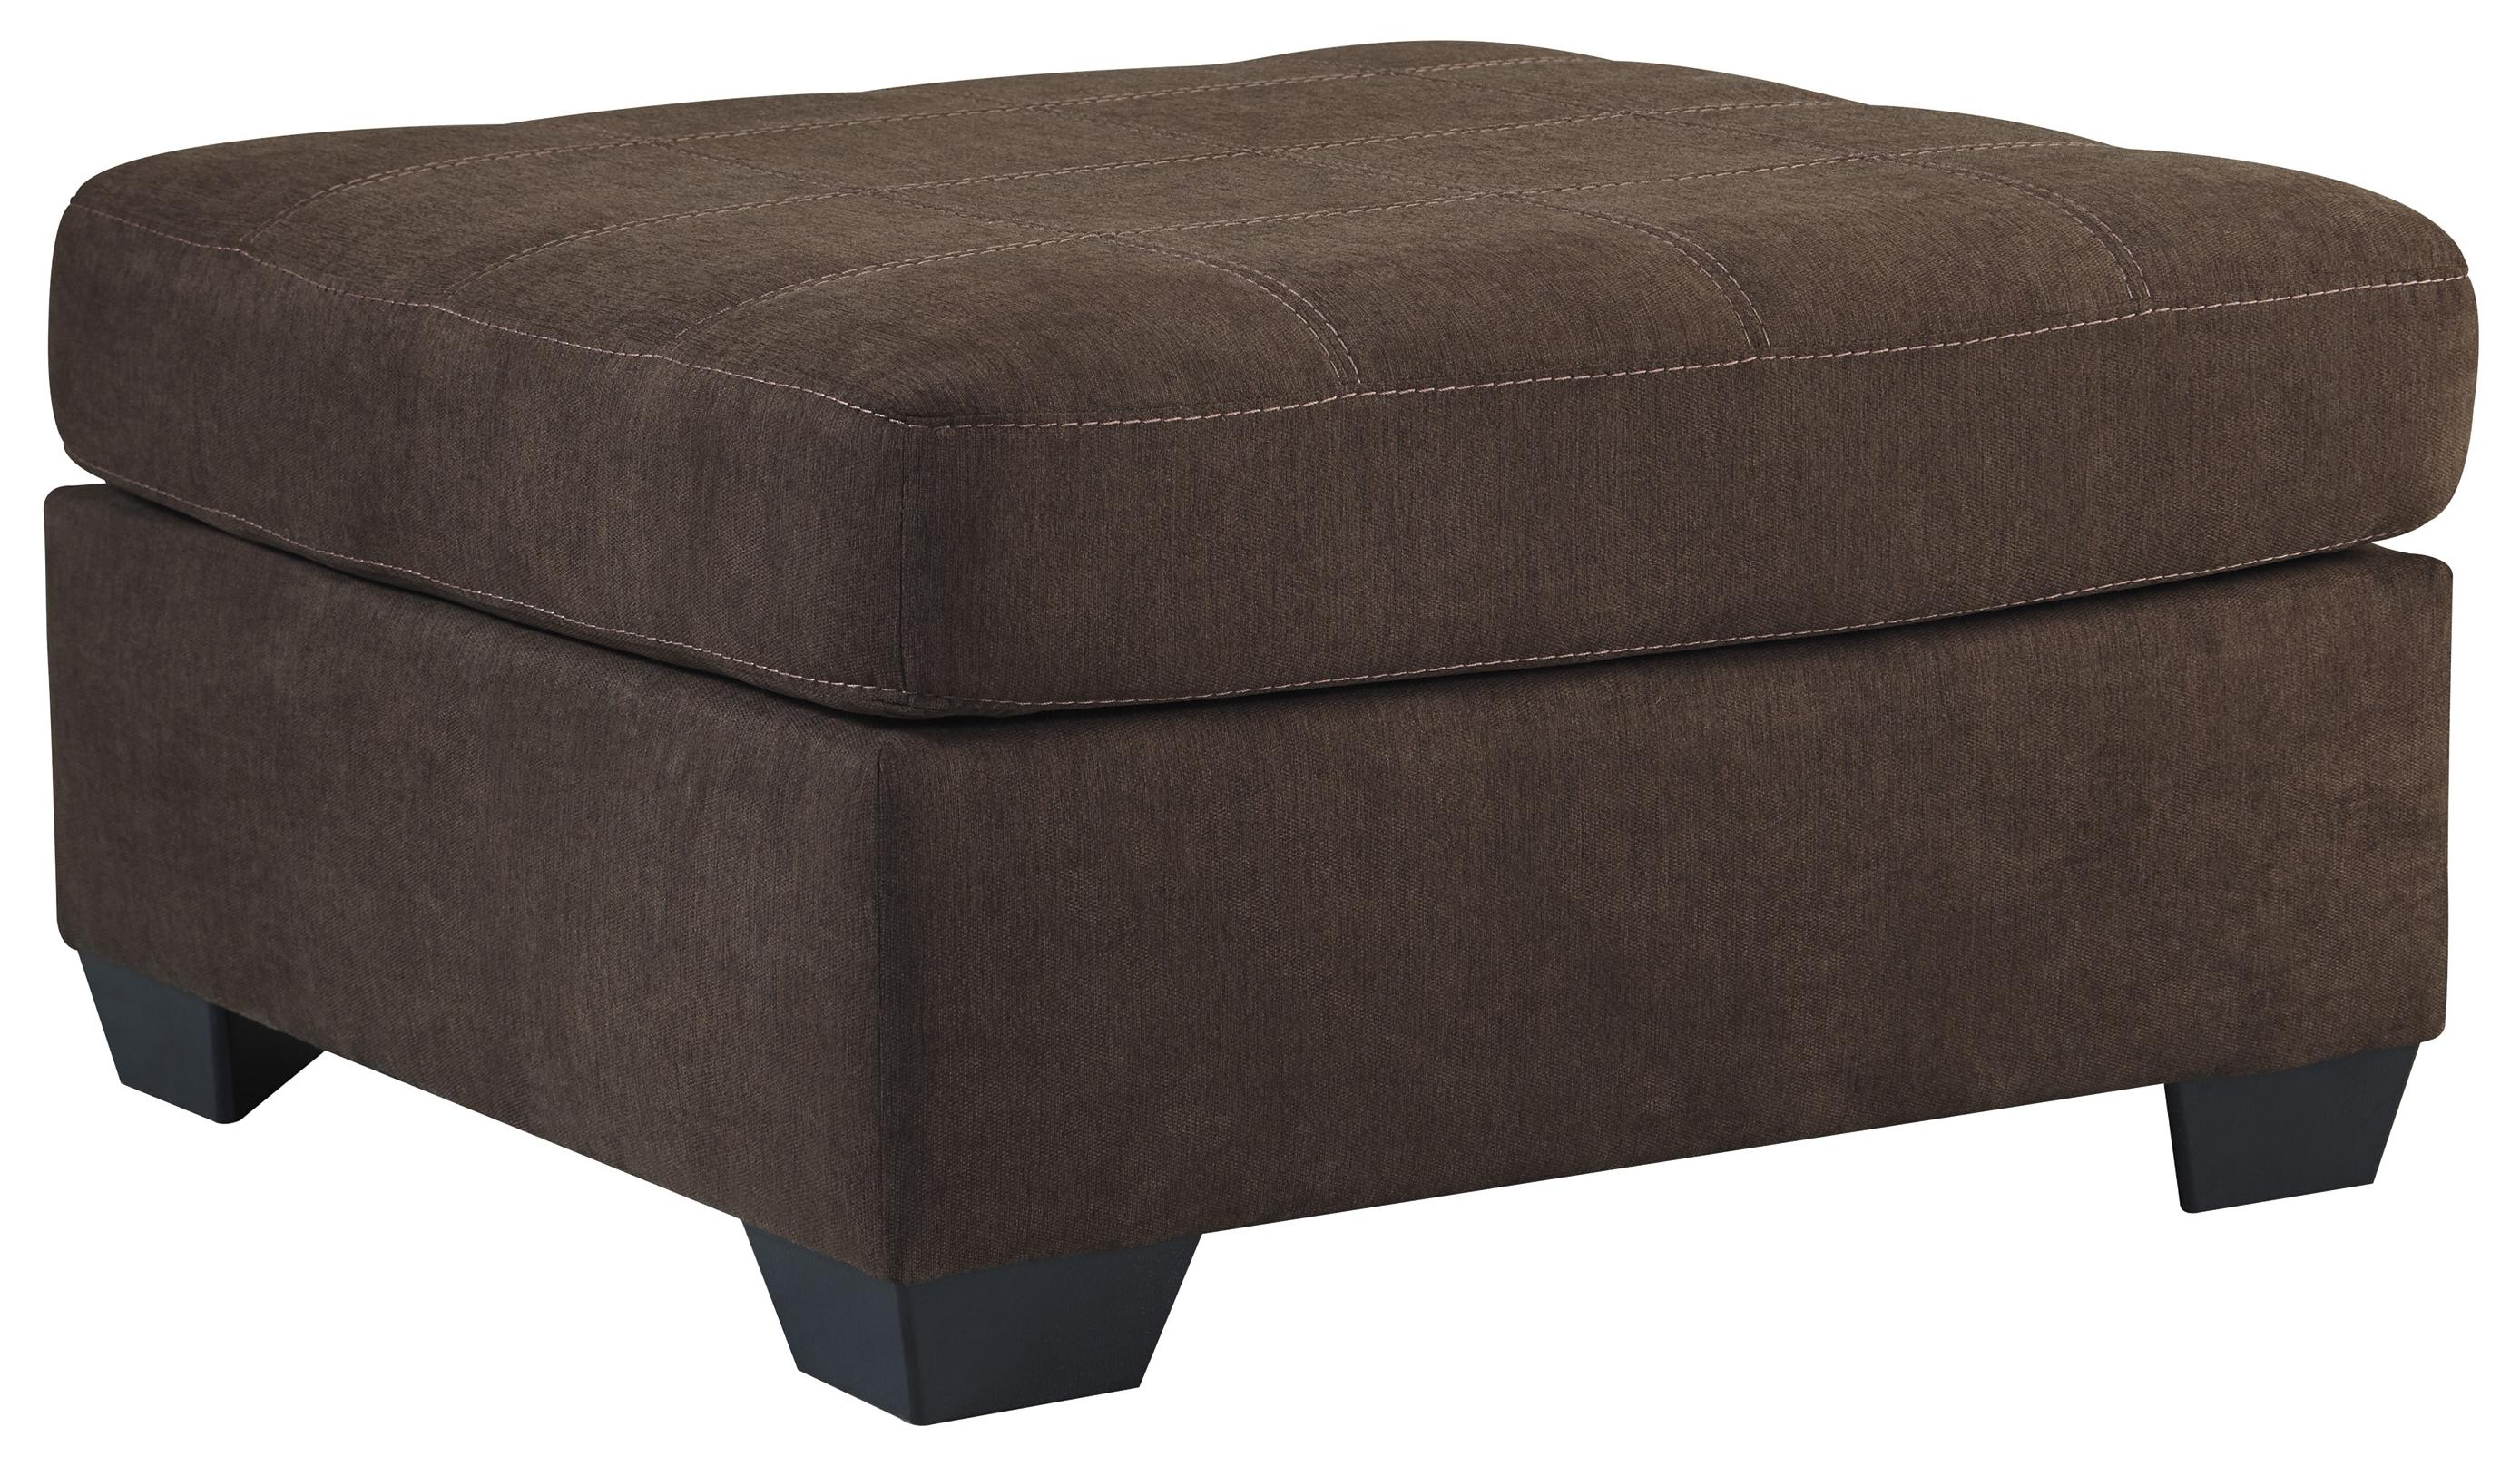 Benchcraft Maier - Walnut Oversized Accent Ottoman - Item Number: 4520108